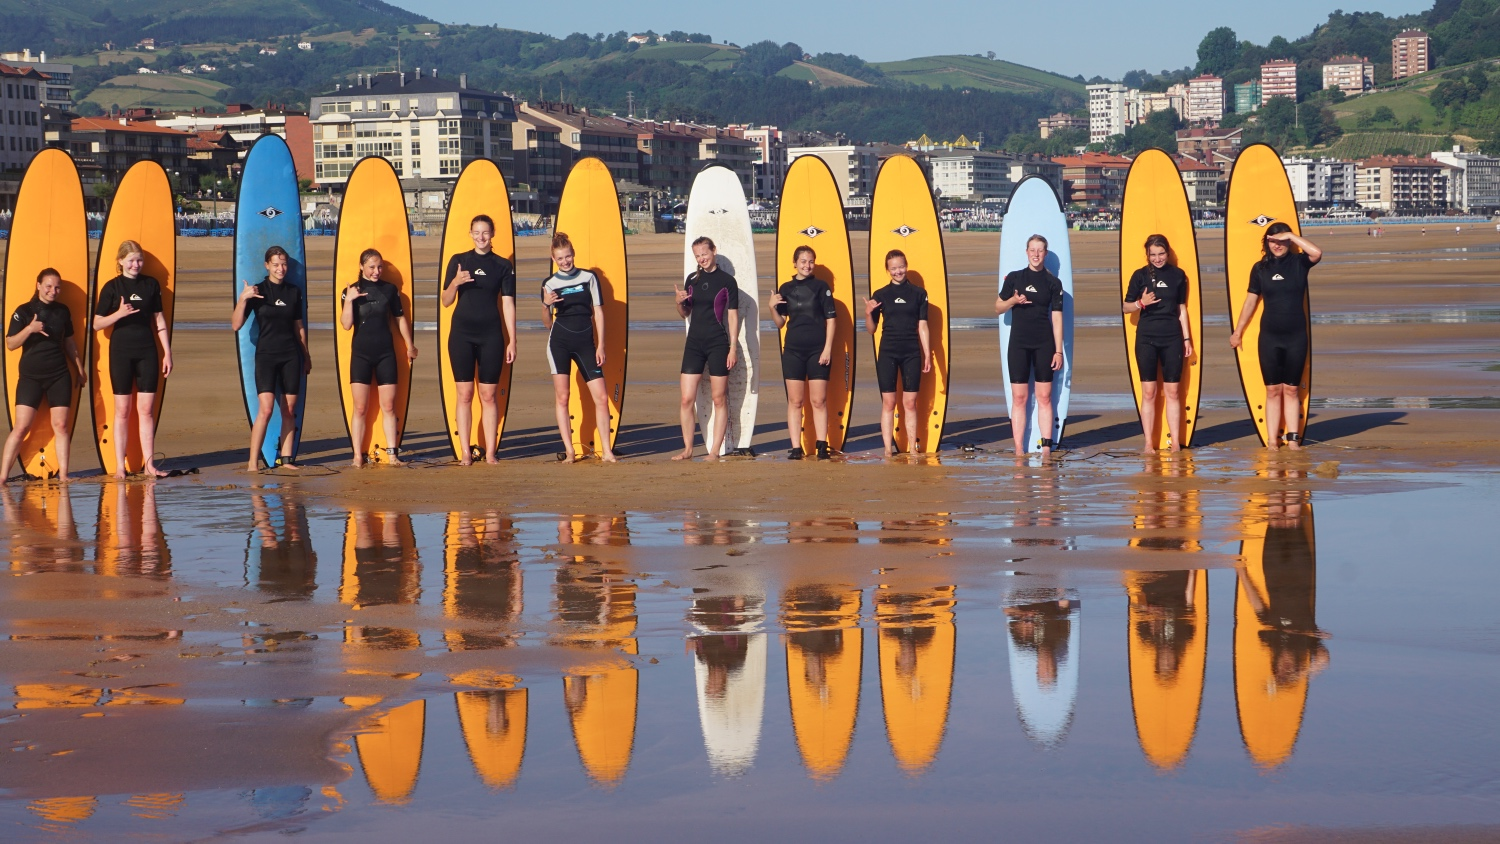 surf camp and classes for groups, schools, friends, business